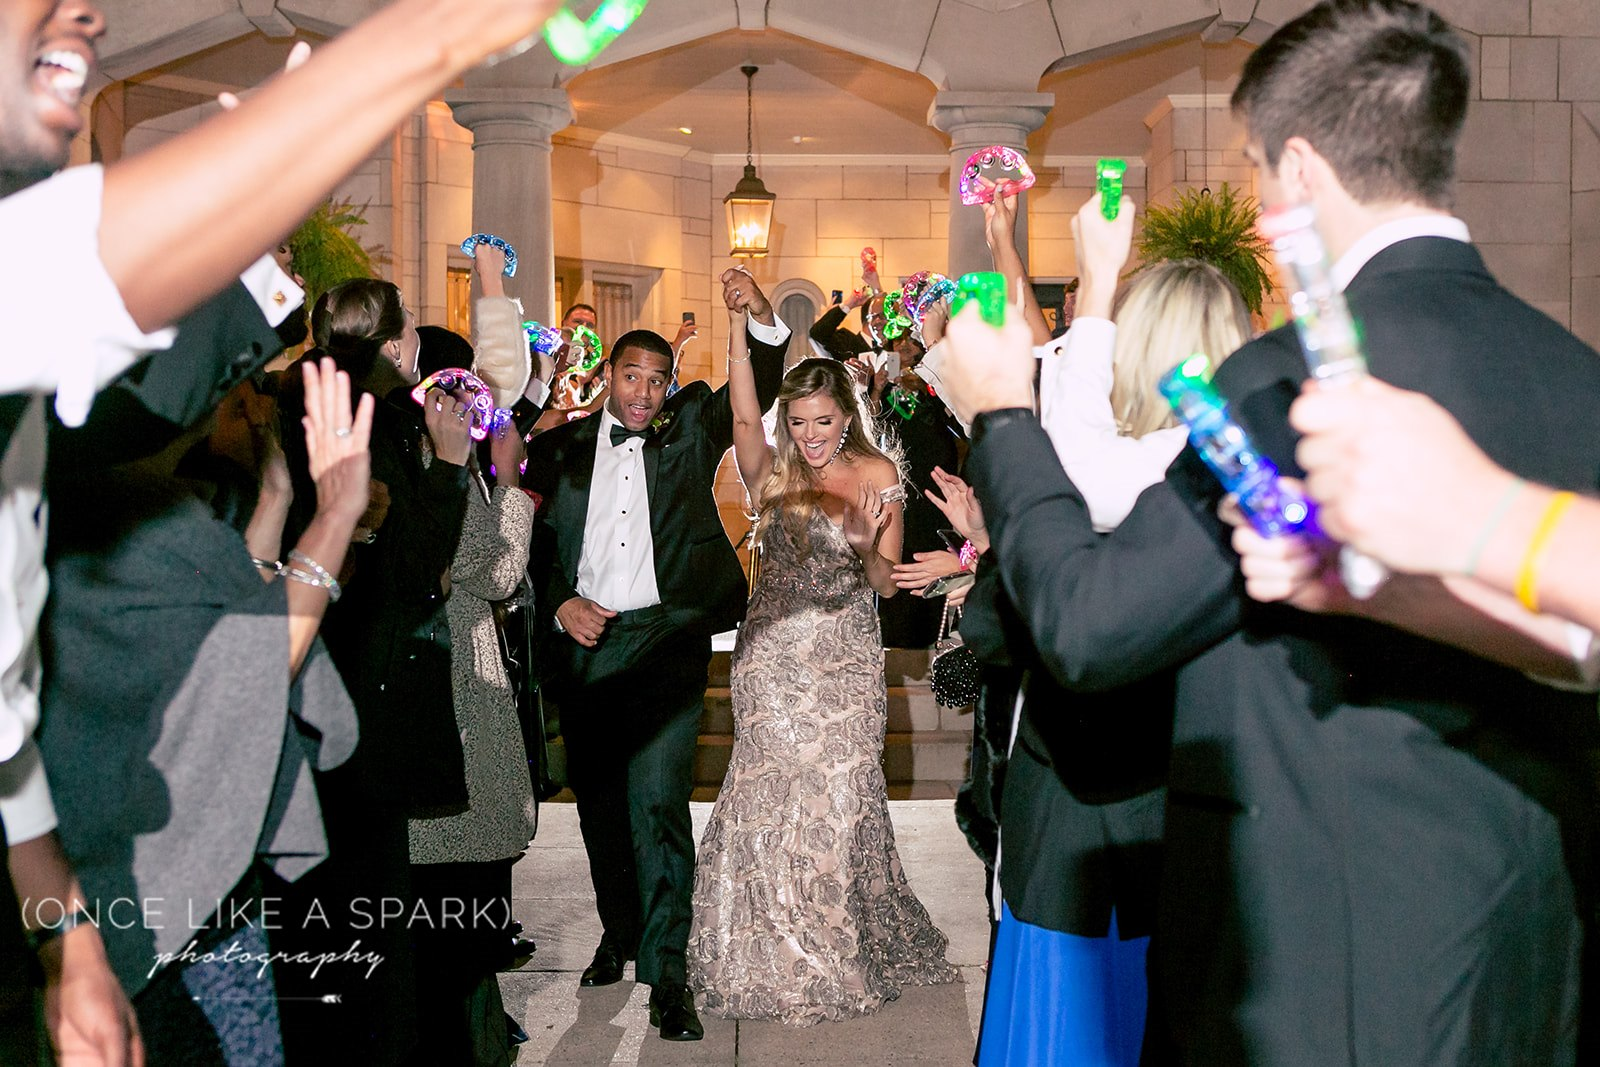 Photo of a light-up tambourine wedding send-off by    Once Like A Spark Photography   .